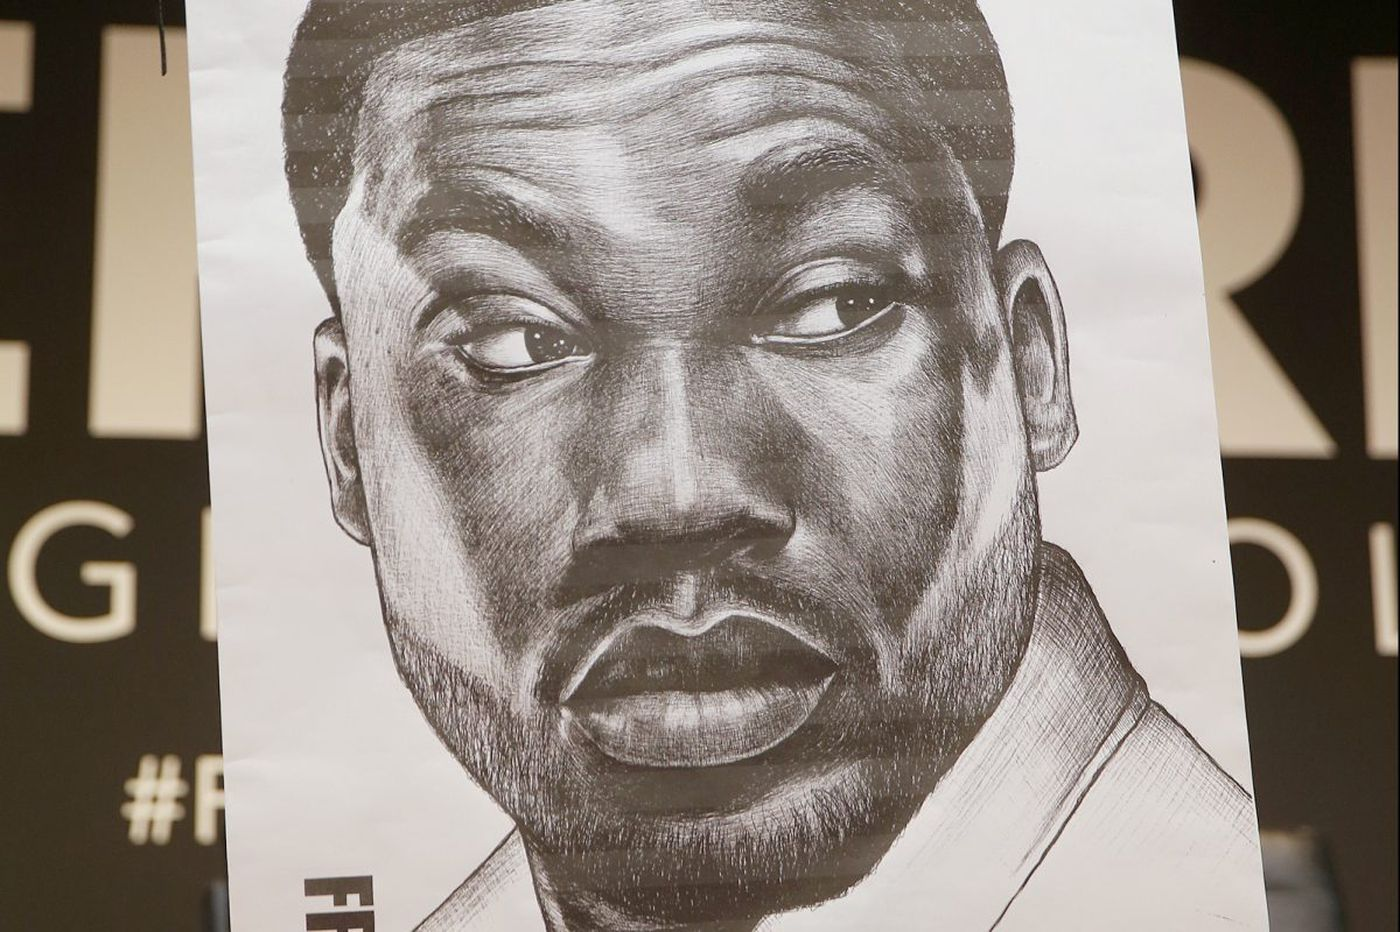 Meek Mill talks leaving Philly for Atlanta, justice system corruption in first prison interview